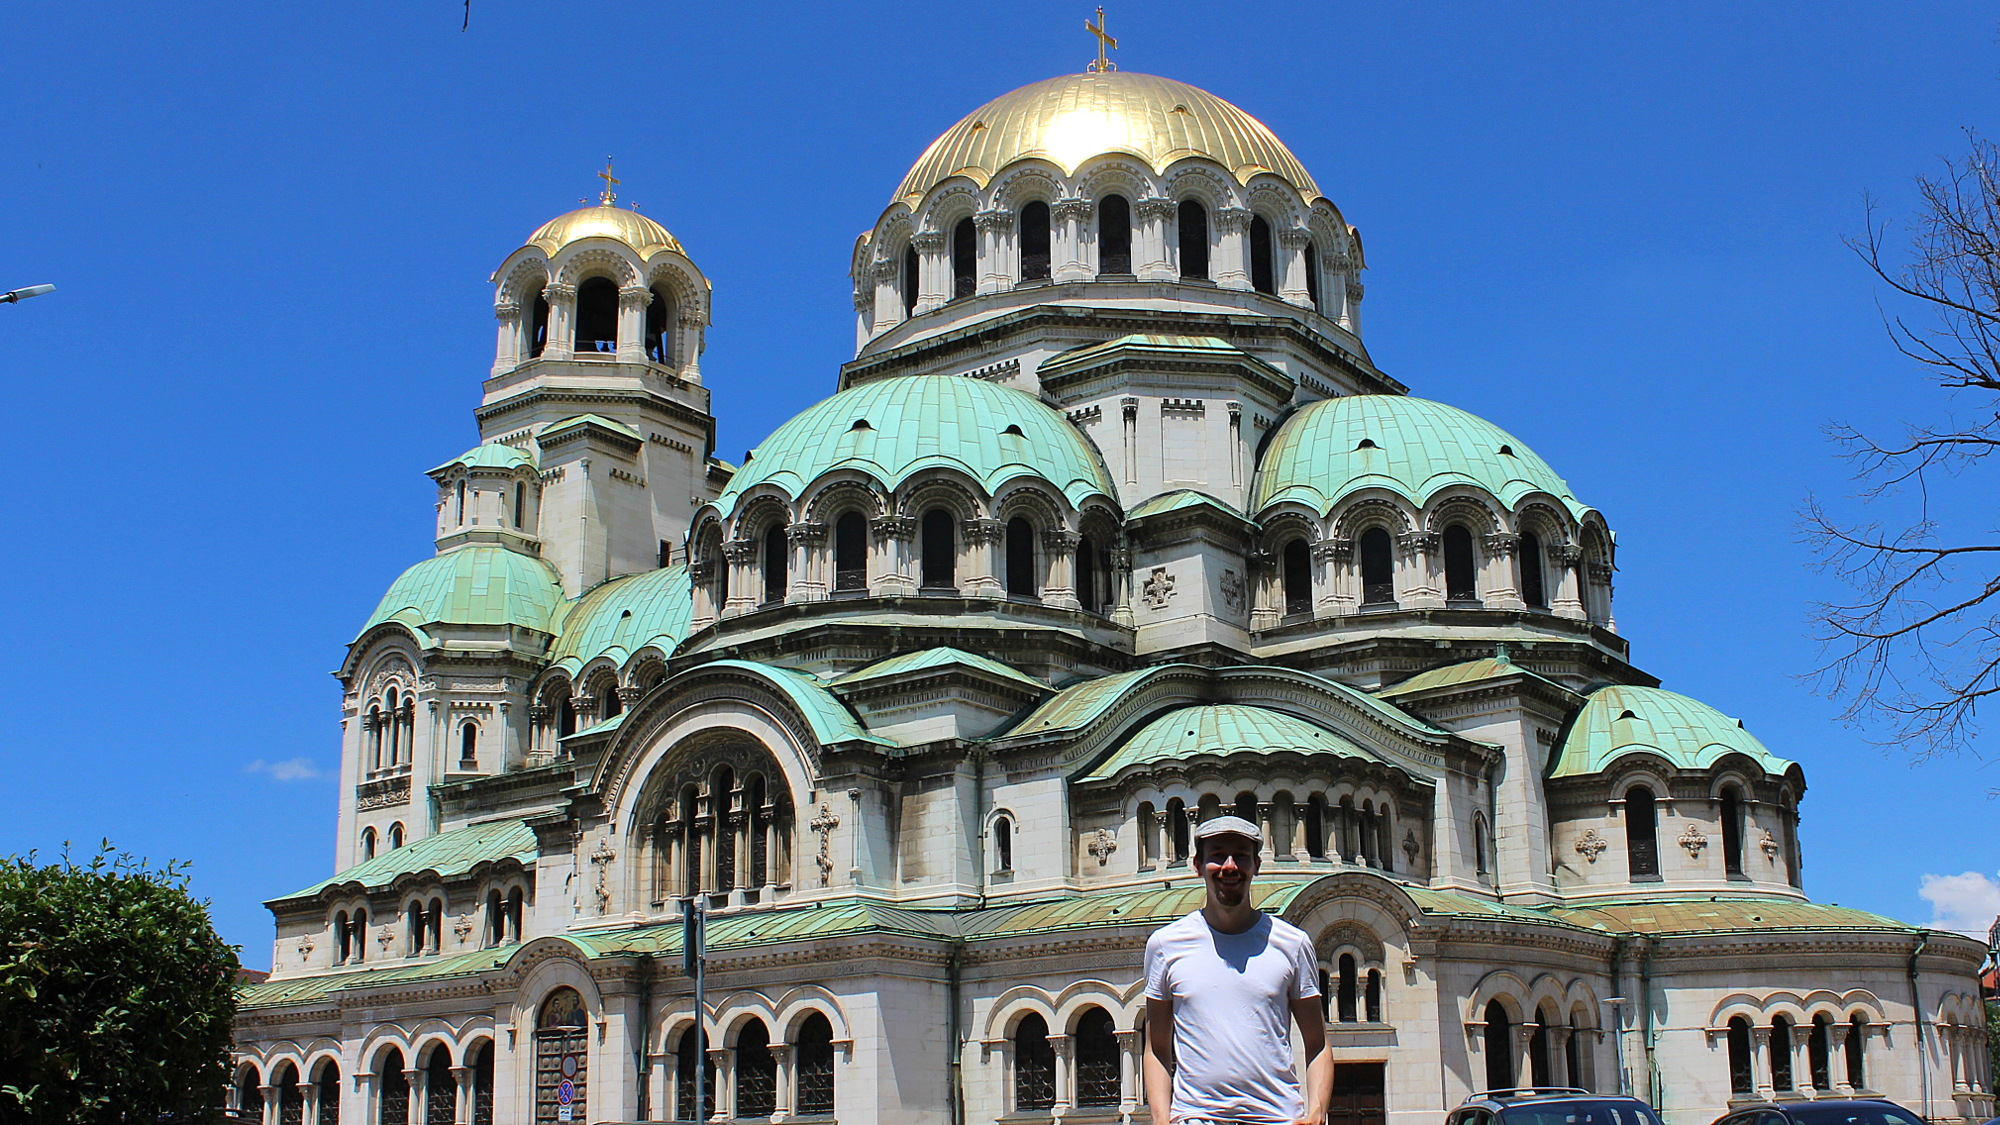 Alexander Nevsky Cahedral in Sofia during the day.